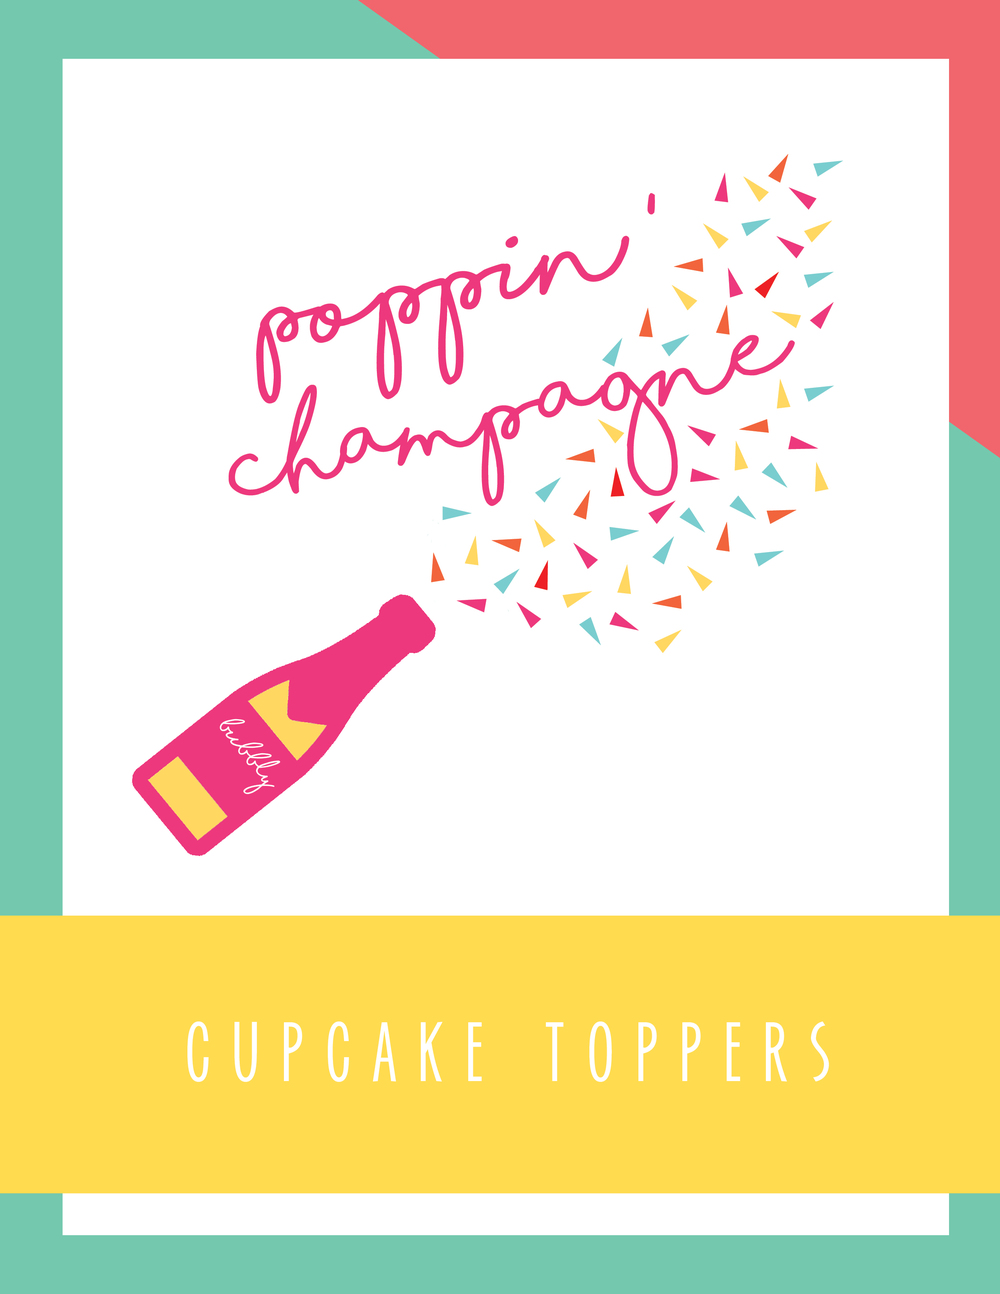 Bold & Pop Freebies Poppin' Champagne Cupcake Toppers